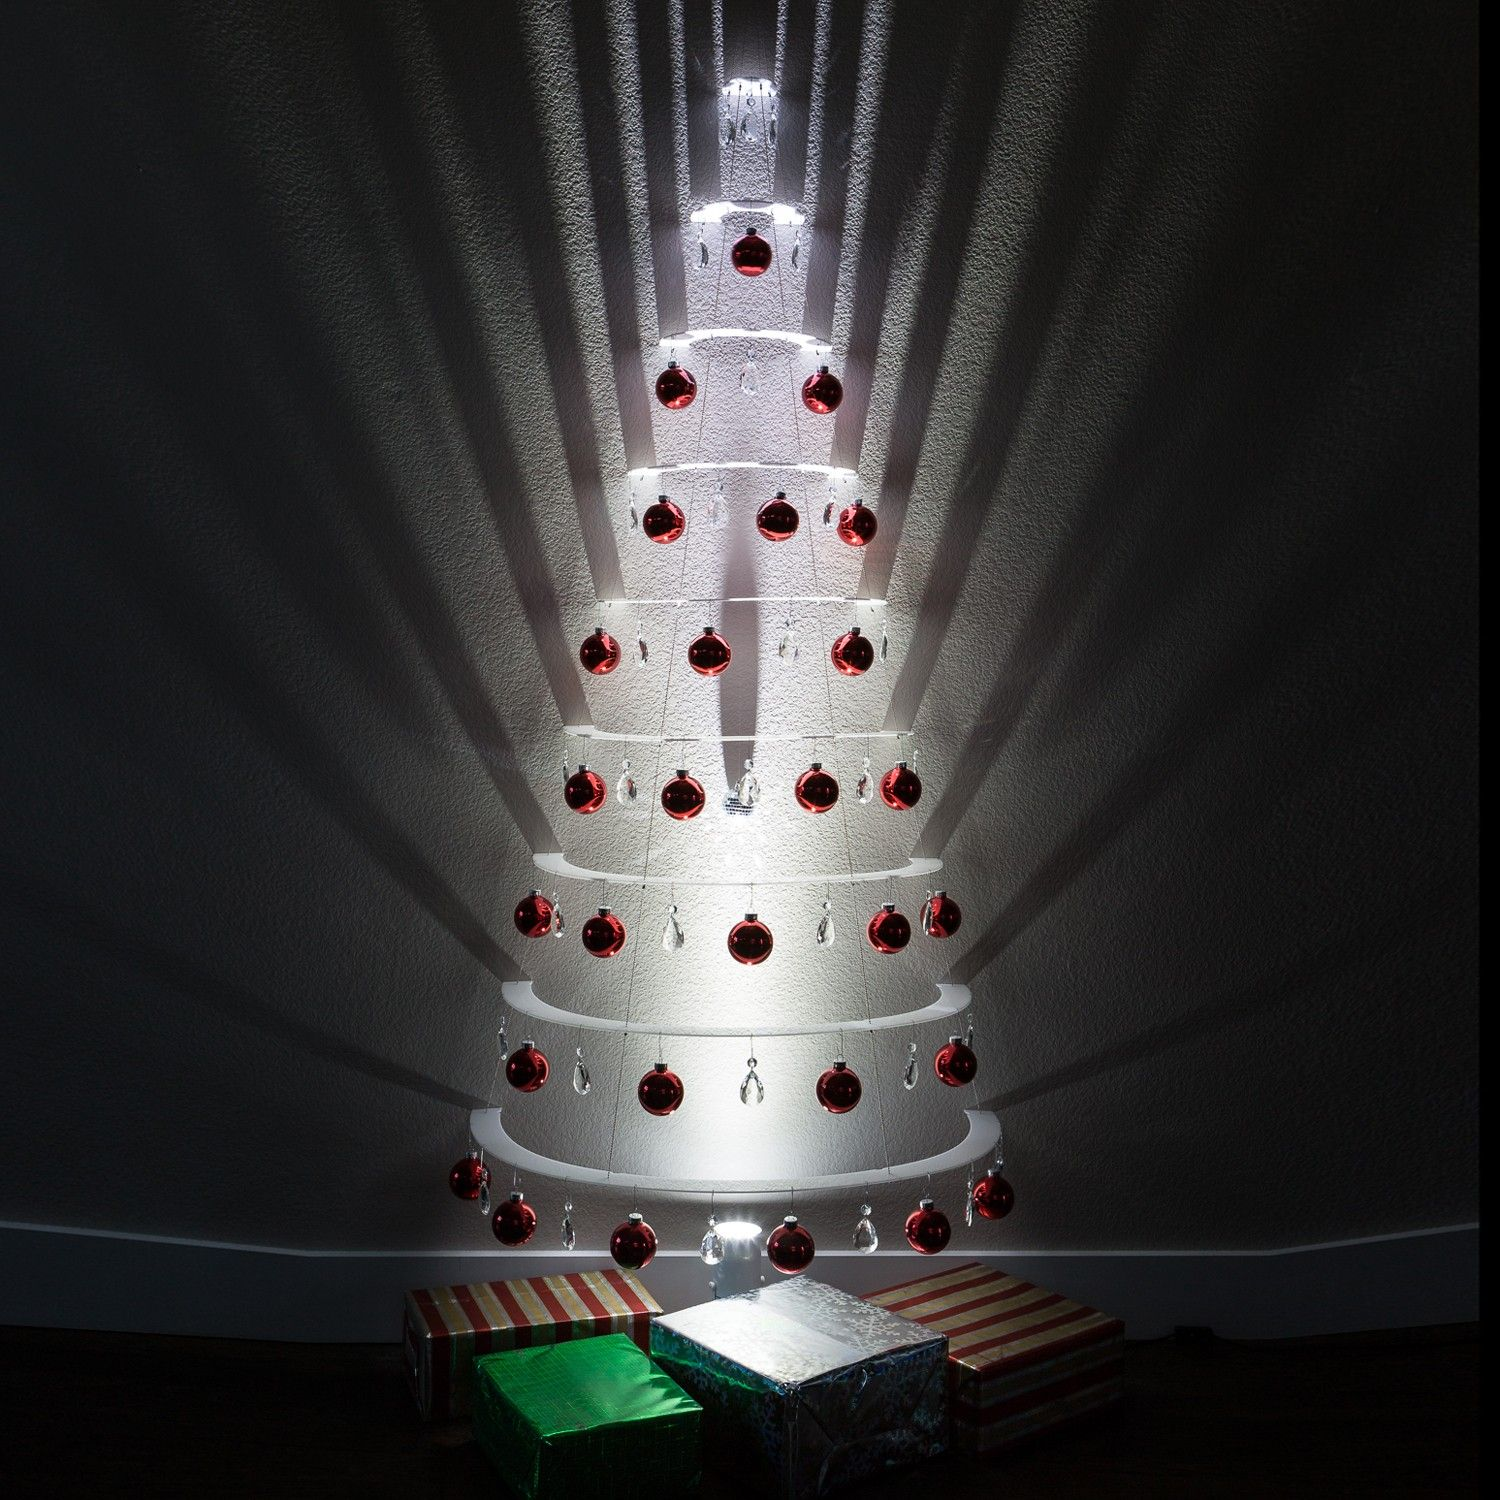 New Pearl Half Tree With Shiny Red Ball Ornaments By